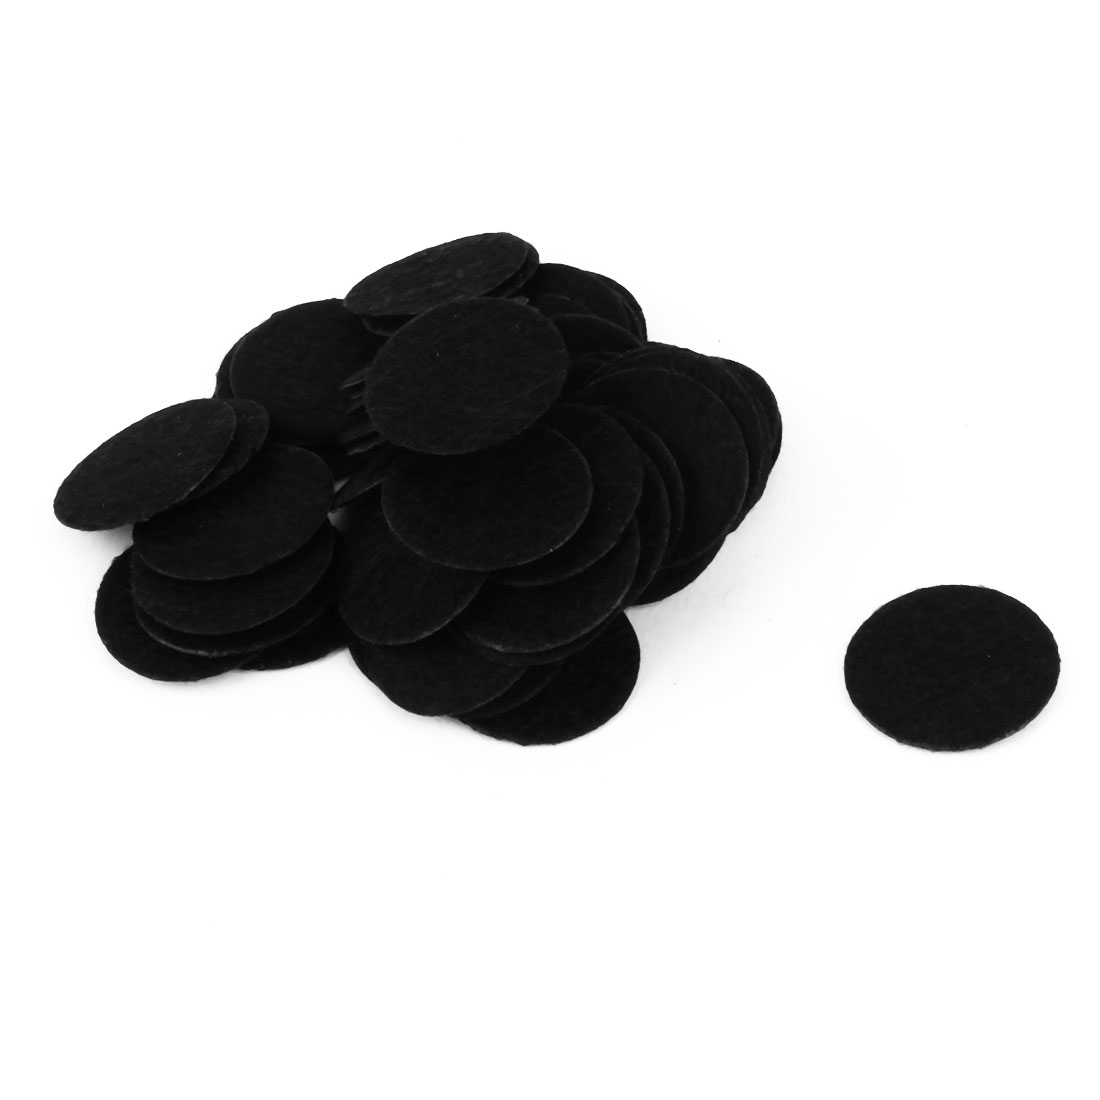 DIY Headwear Round Shaped Hair Band Accessories Circle Pad Black 20mm Dia 50pcs